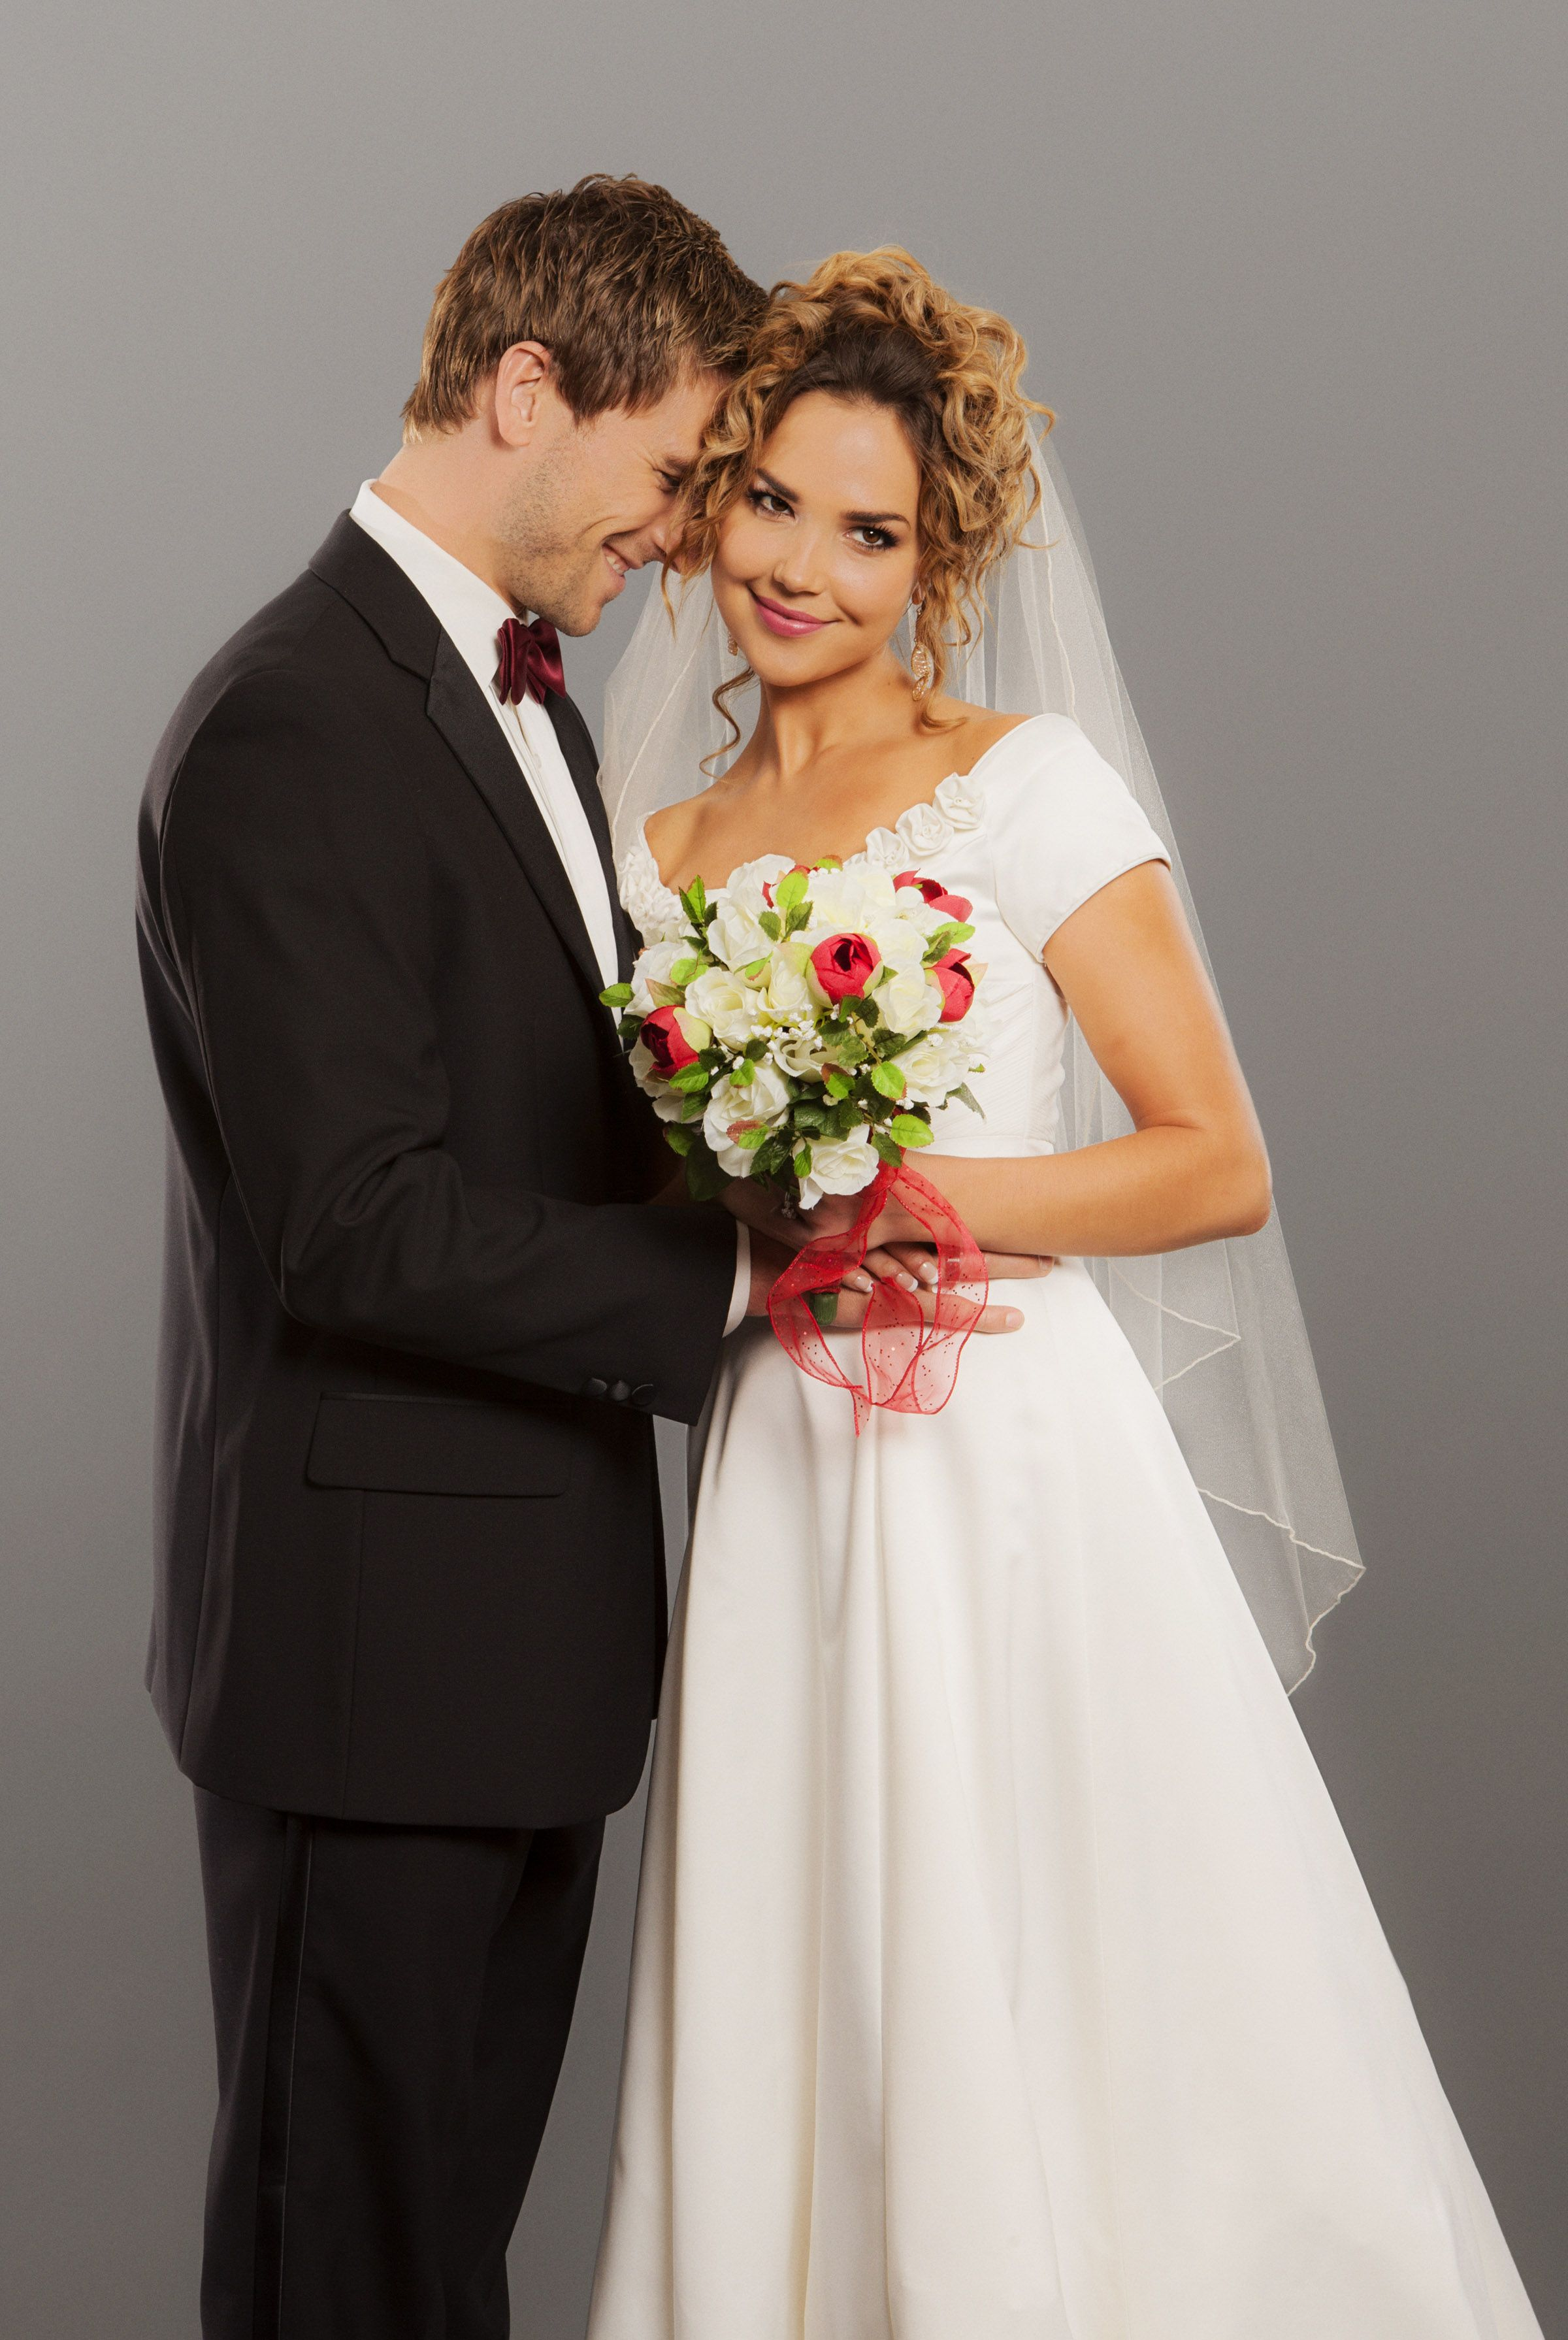 A Bride For Christmas.Arielle Kebbel And Andrew Walker Star In The Hallmark